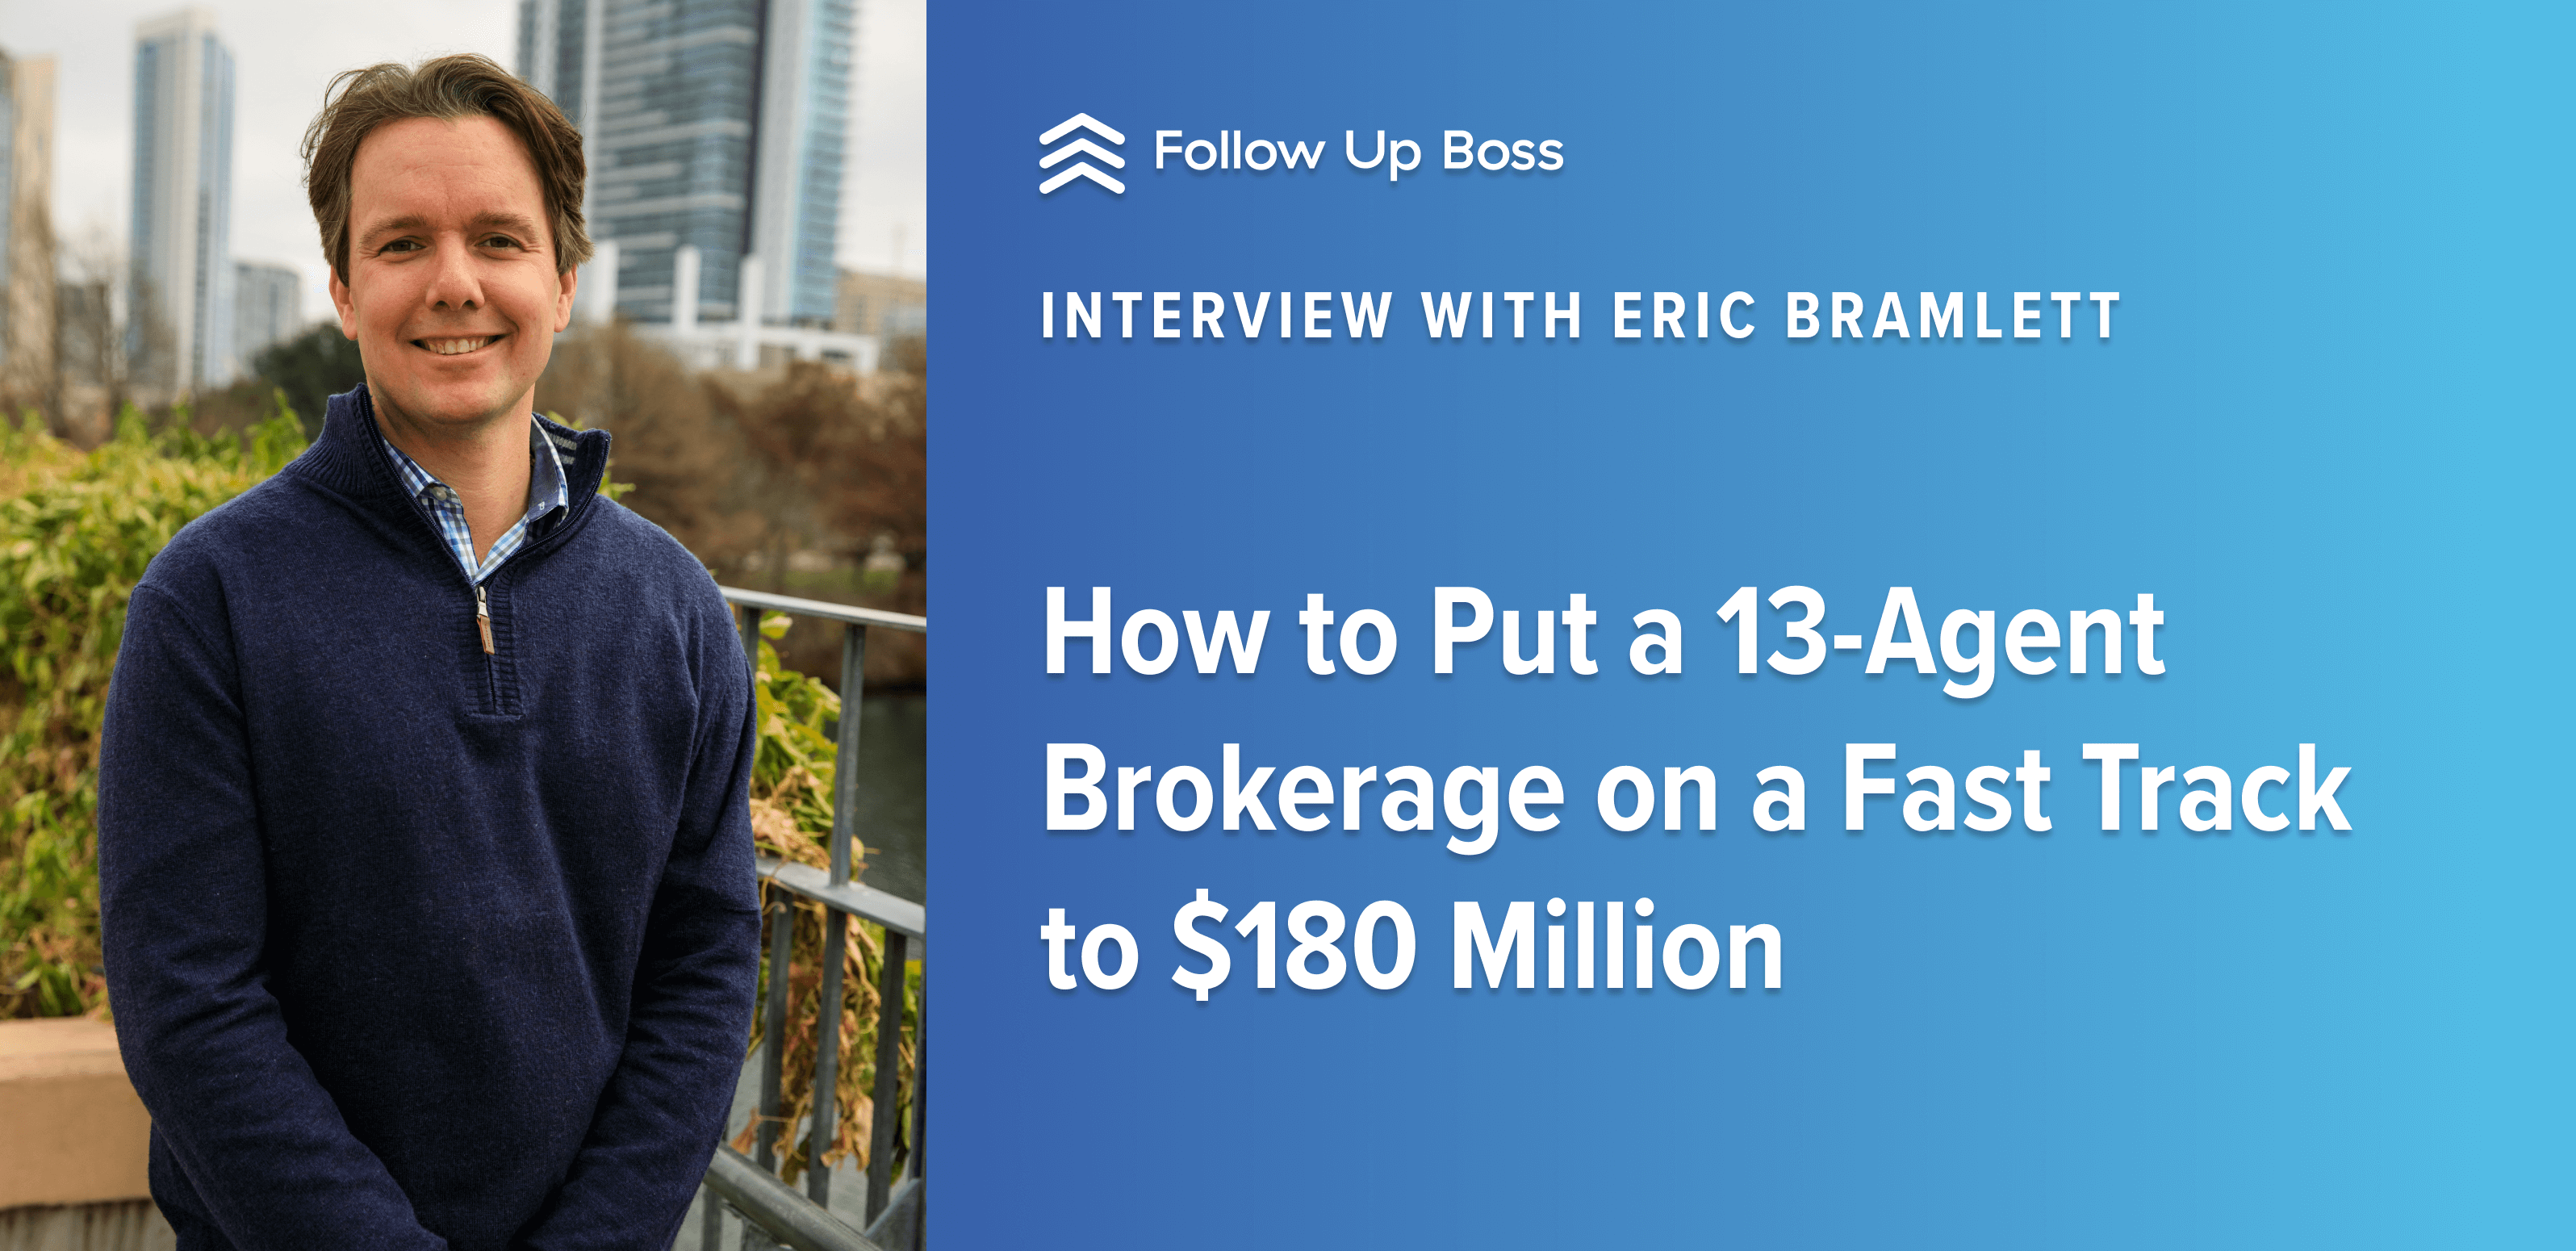 How to Put a 13-Agent Brokerage on a Fast Track to $180 Million — Cracking the Culture Code with Eric Bramlett